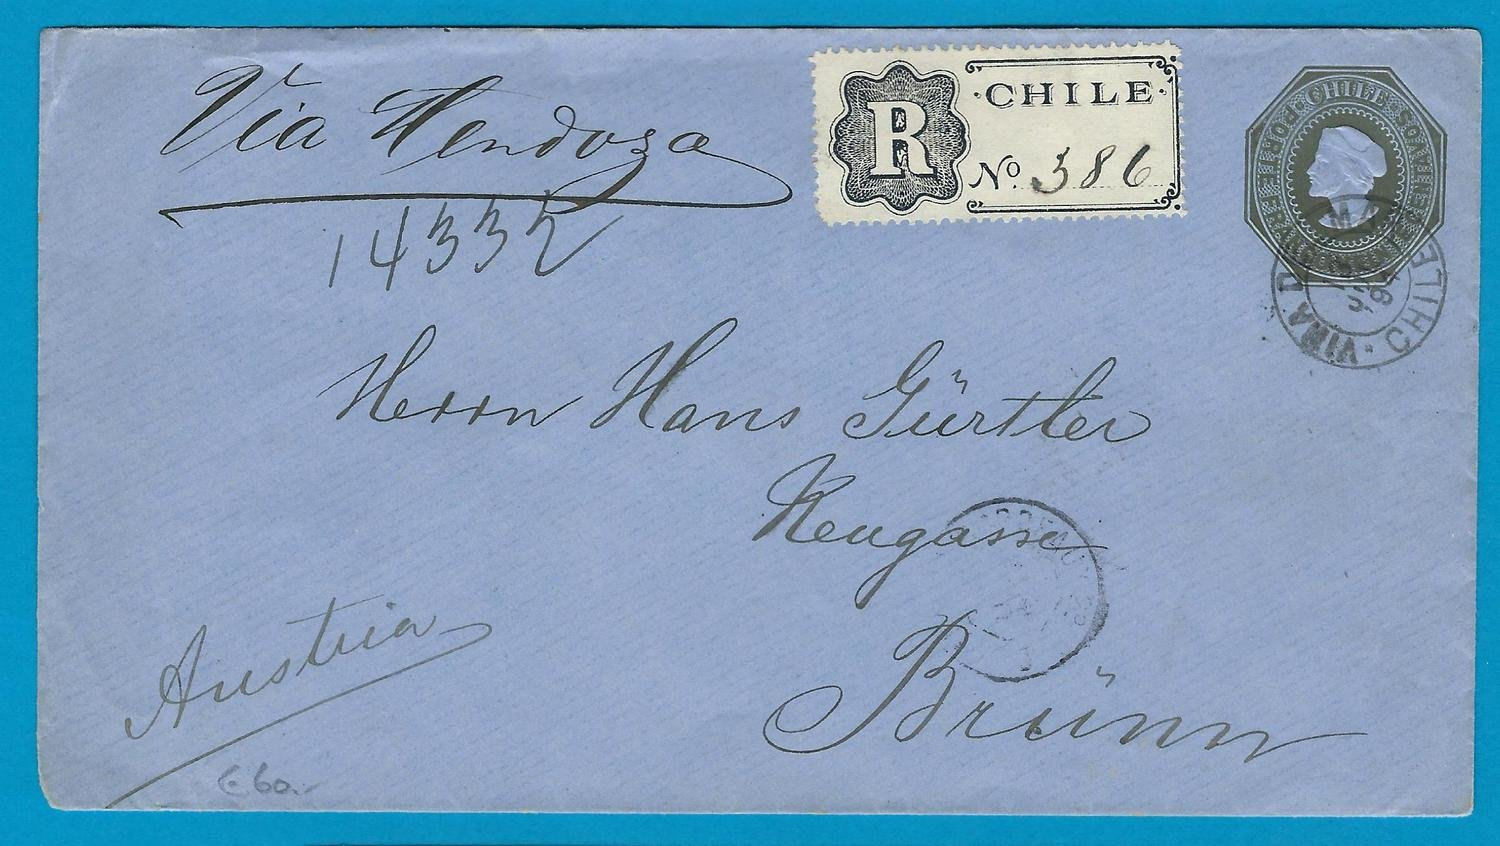 CHILE Registered postal envelope 1894 Viña del Mar to Austria